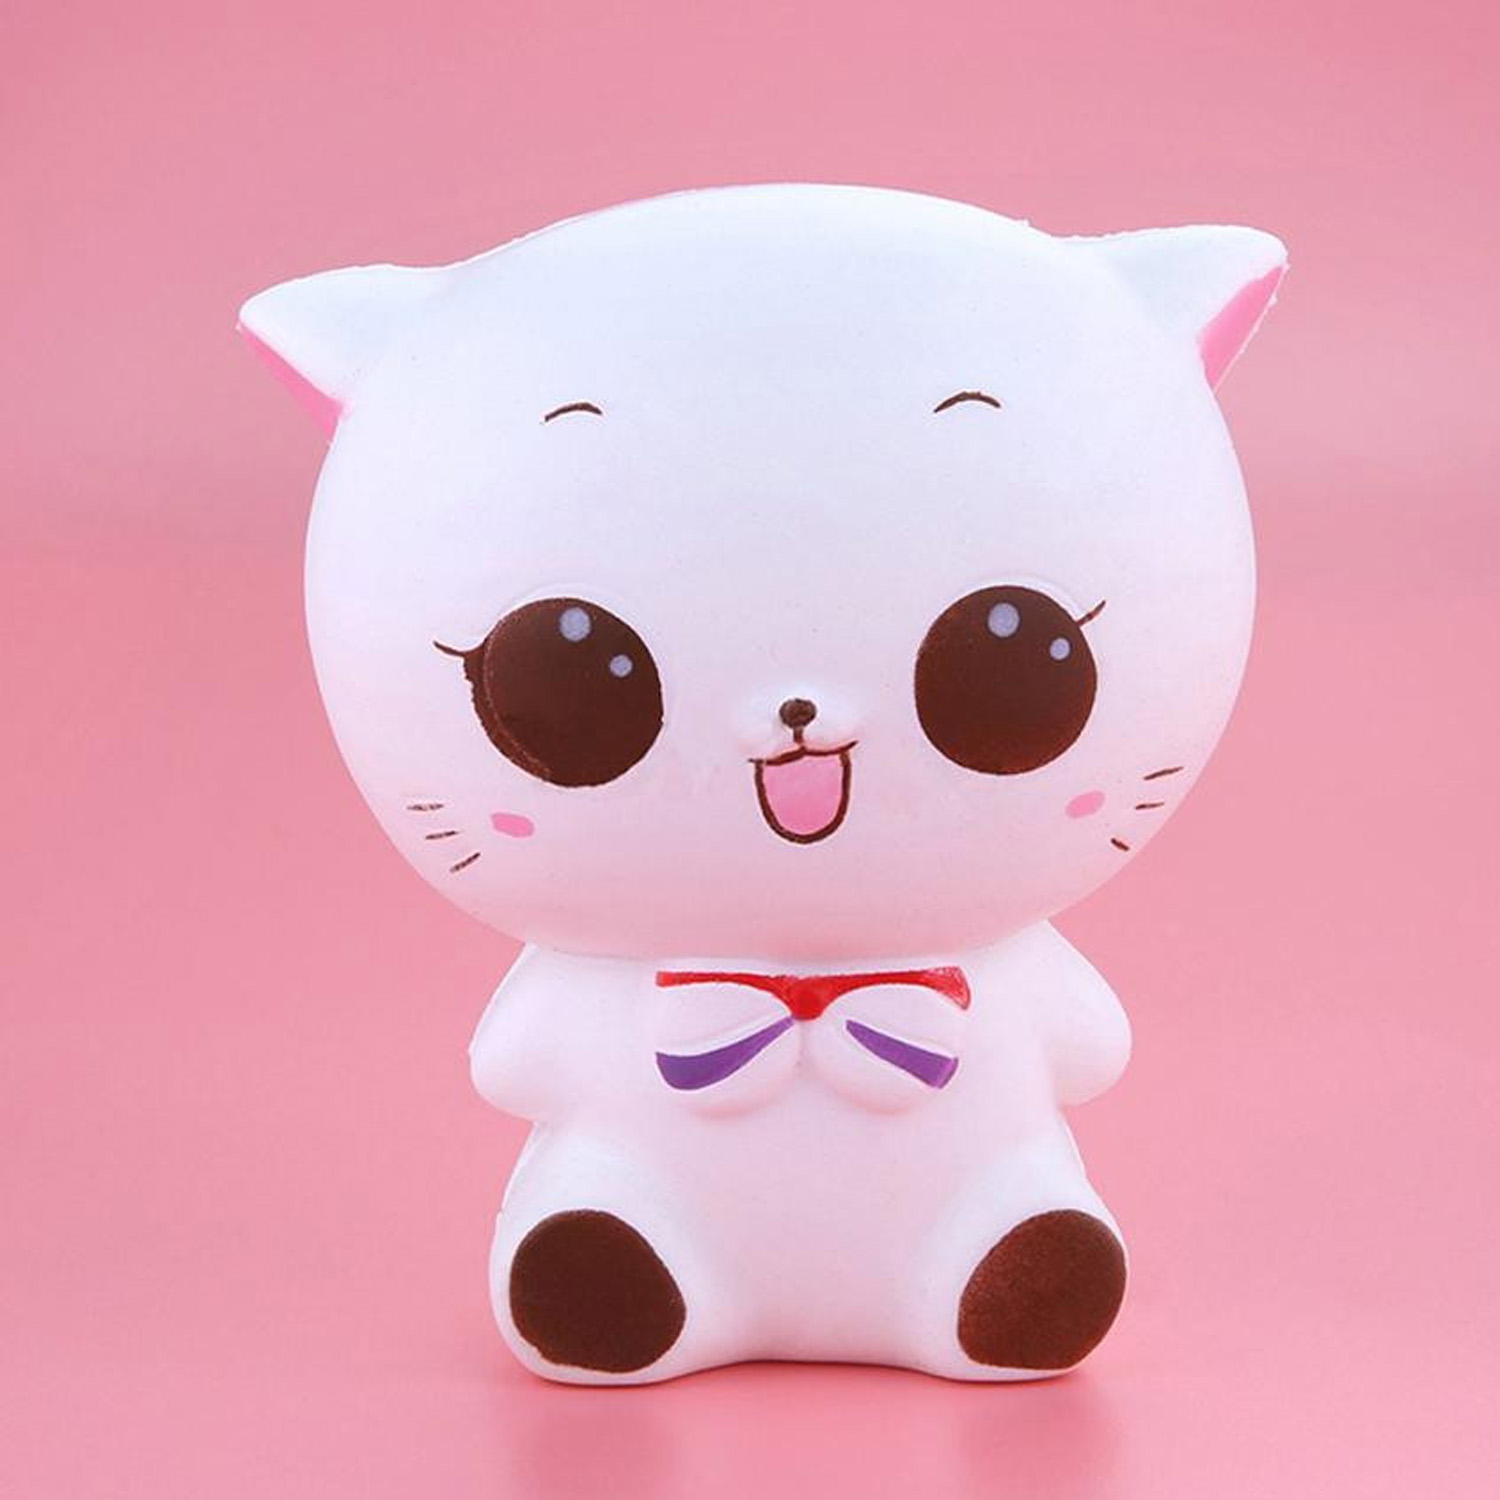 Besegad Cute Kawaii Soft Slow Rising Cartoon Squishy Little White Cat Squeeze Animals Decompression Relieves Stress Anxiety Toy